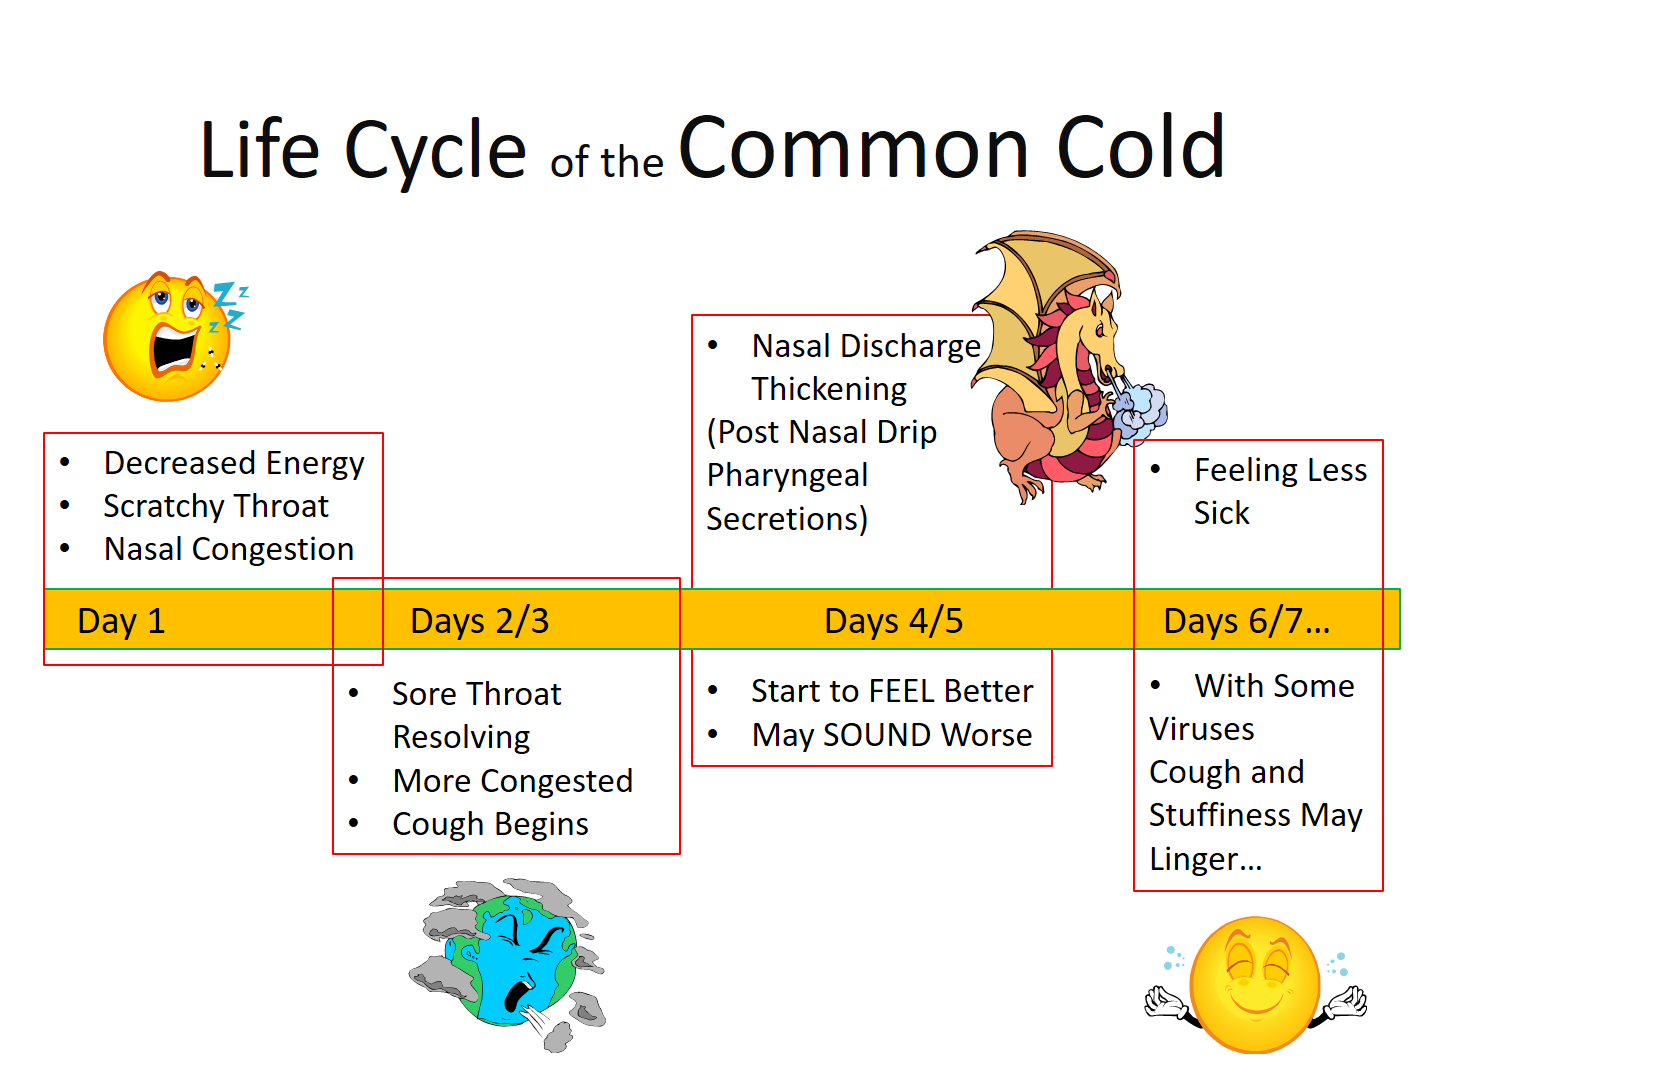 Life Cycle of the Common Cold